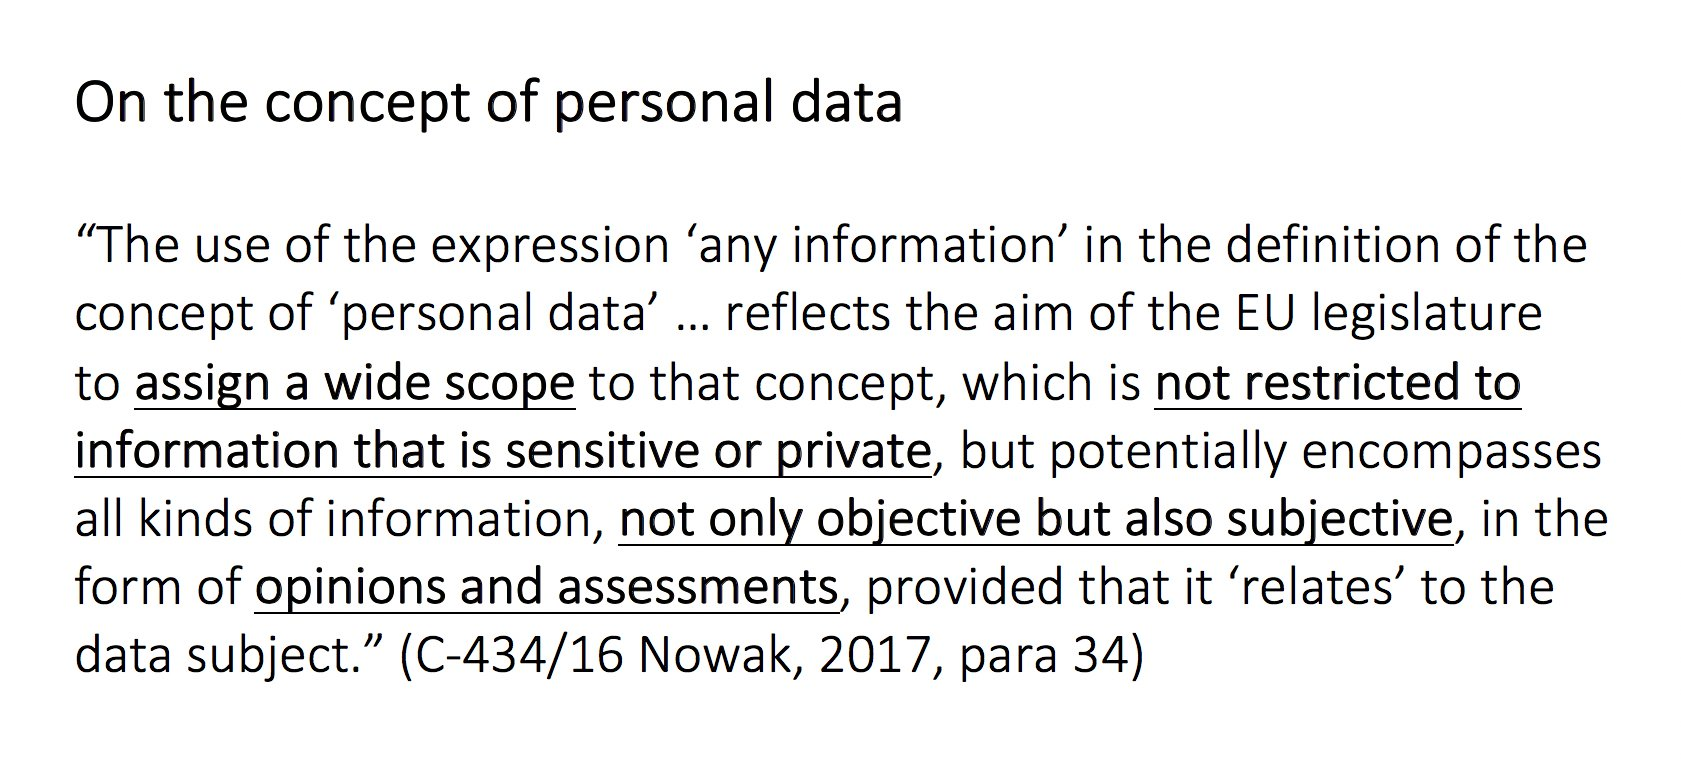 It's 25 April and I'm starting a countdown to the #GDPR Day with quotes from #CJEU or #ECHR. First one up: CJEU on the concept of personal data: #EUDataP #GDPRCountdown https://t.co/OOWbcBA0TB